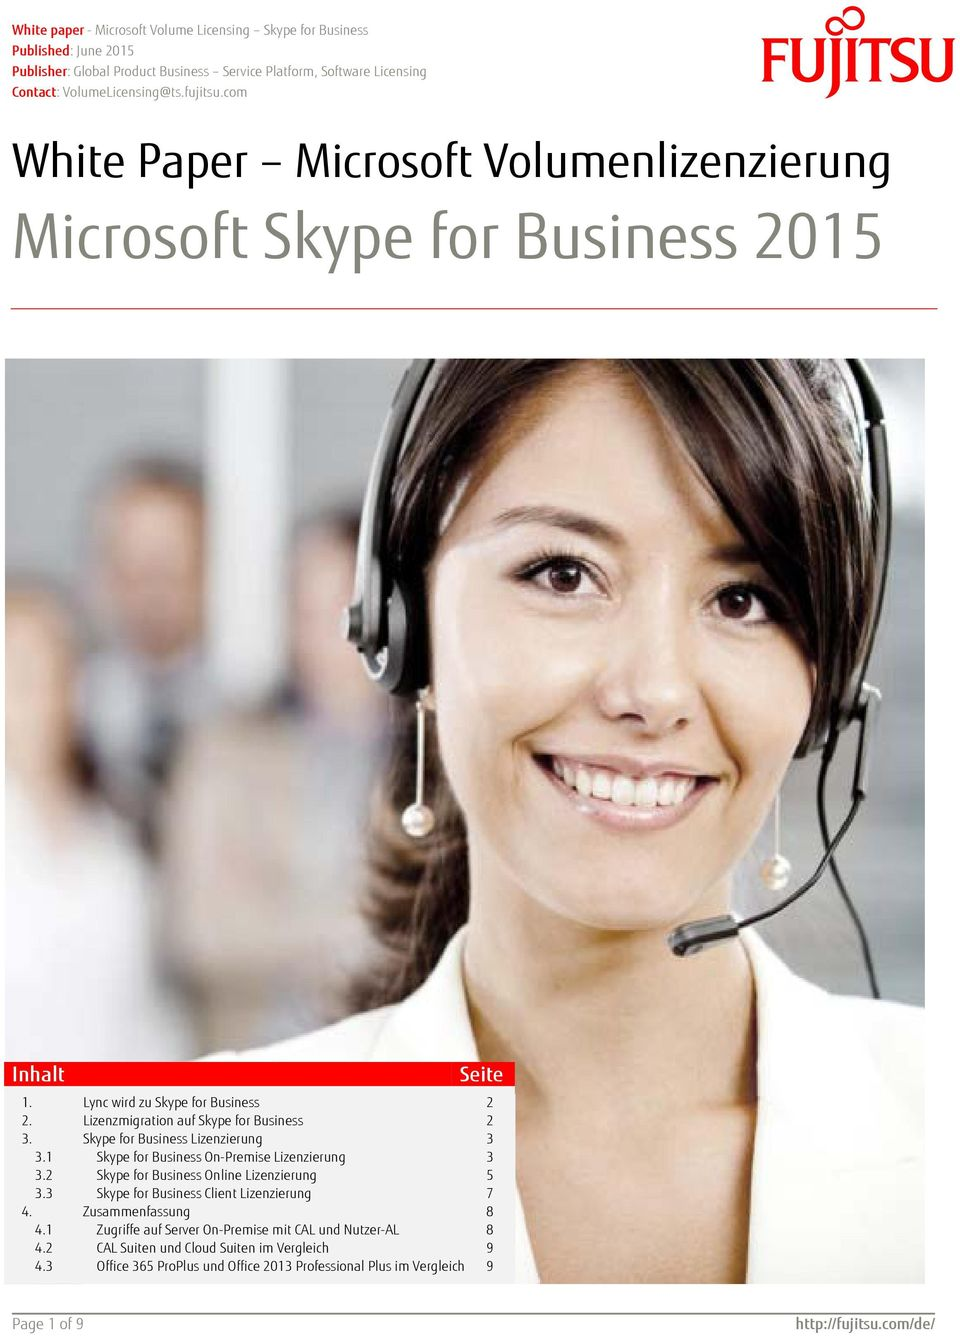 3 Lync wird zu Skype for Business Lizenzmigration auf Skype for Business Skype for Business Lizenzierung Skype for Business On-Premise Lizenzierung Skype for Business Online